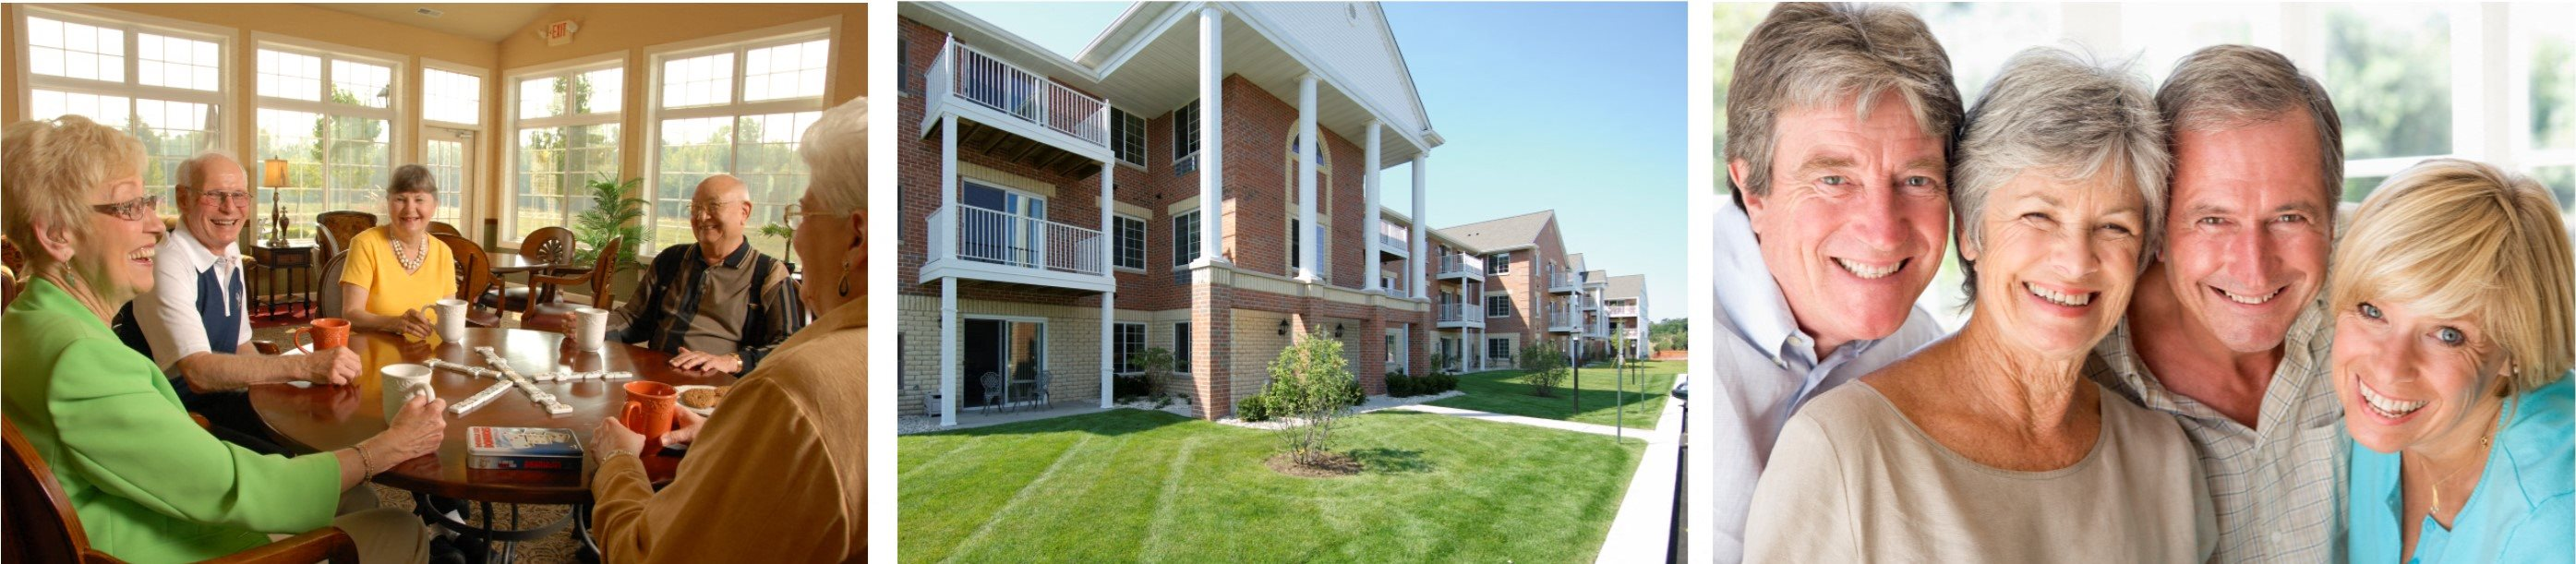 Wonderful Senior Living Community  at Wildwood Highlands Apartments & Townhomes 55+, Menomonee Falls, WI,53051